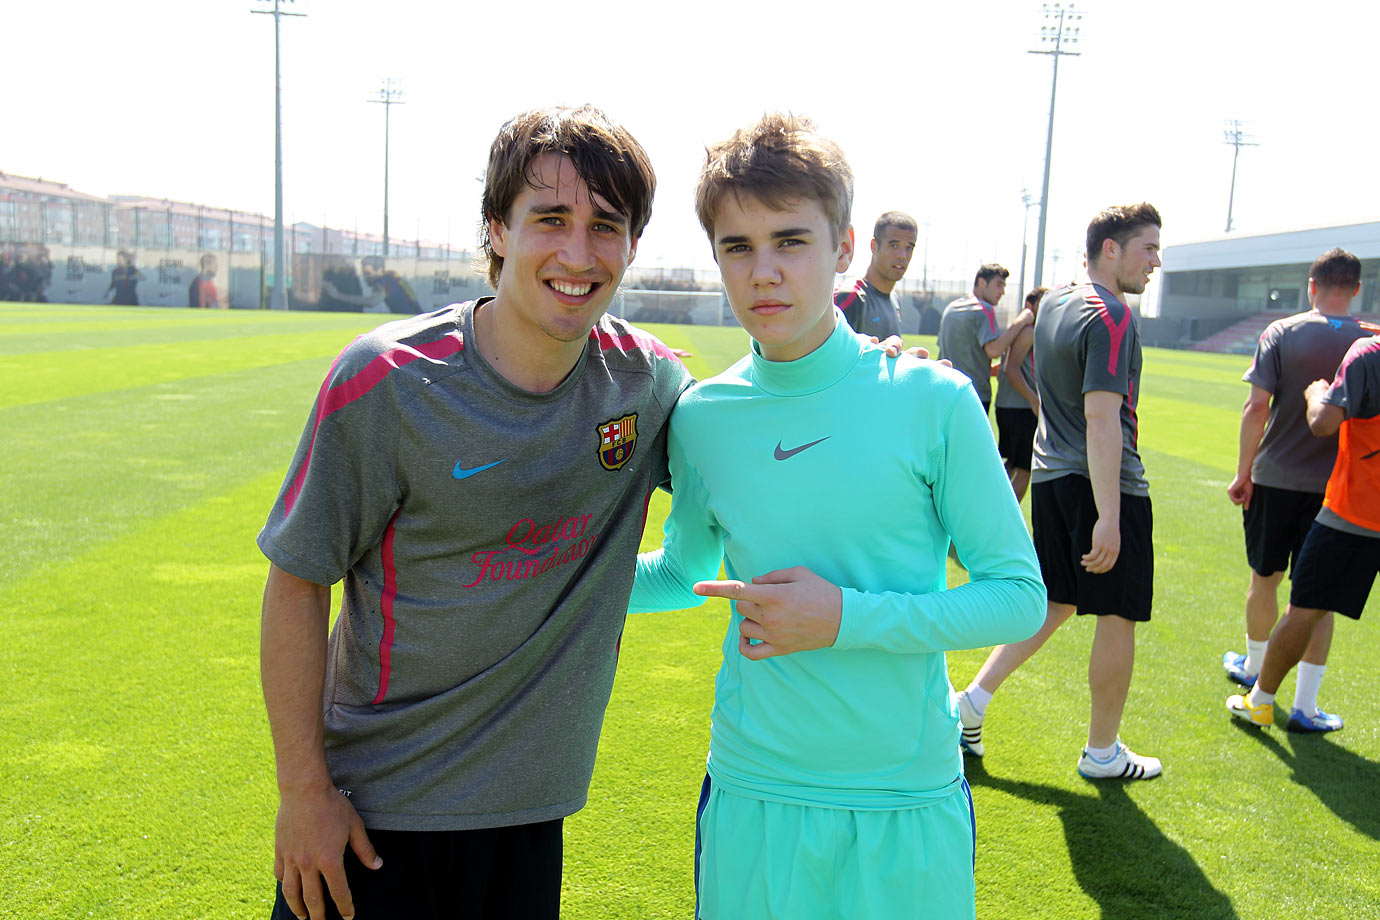 April 9, 2011: FC Barcelona training session in Barcelona, Spain